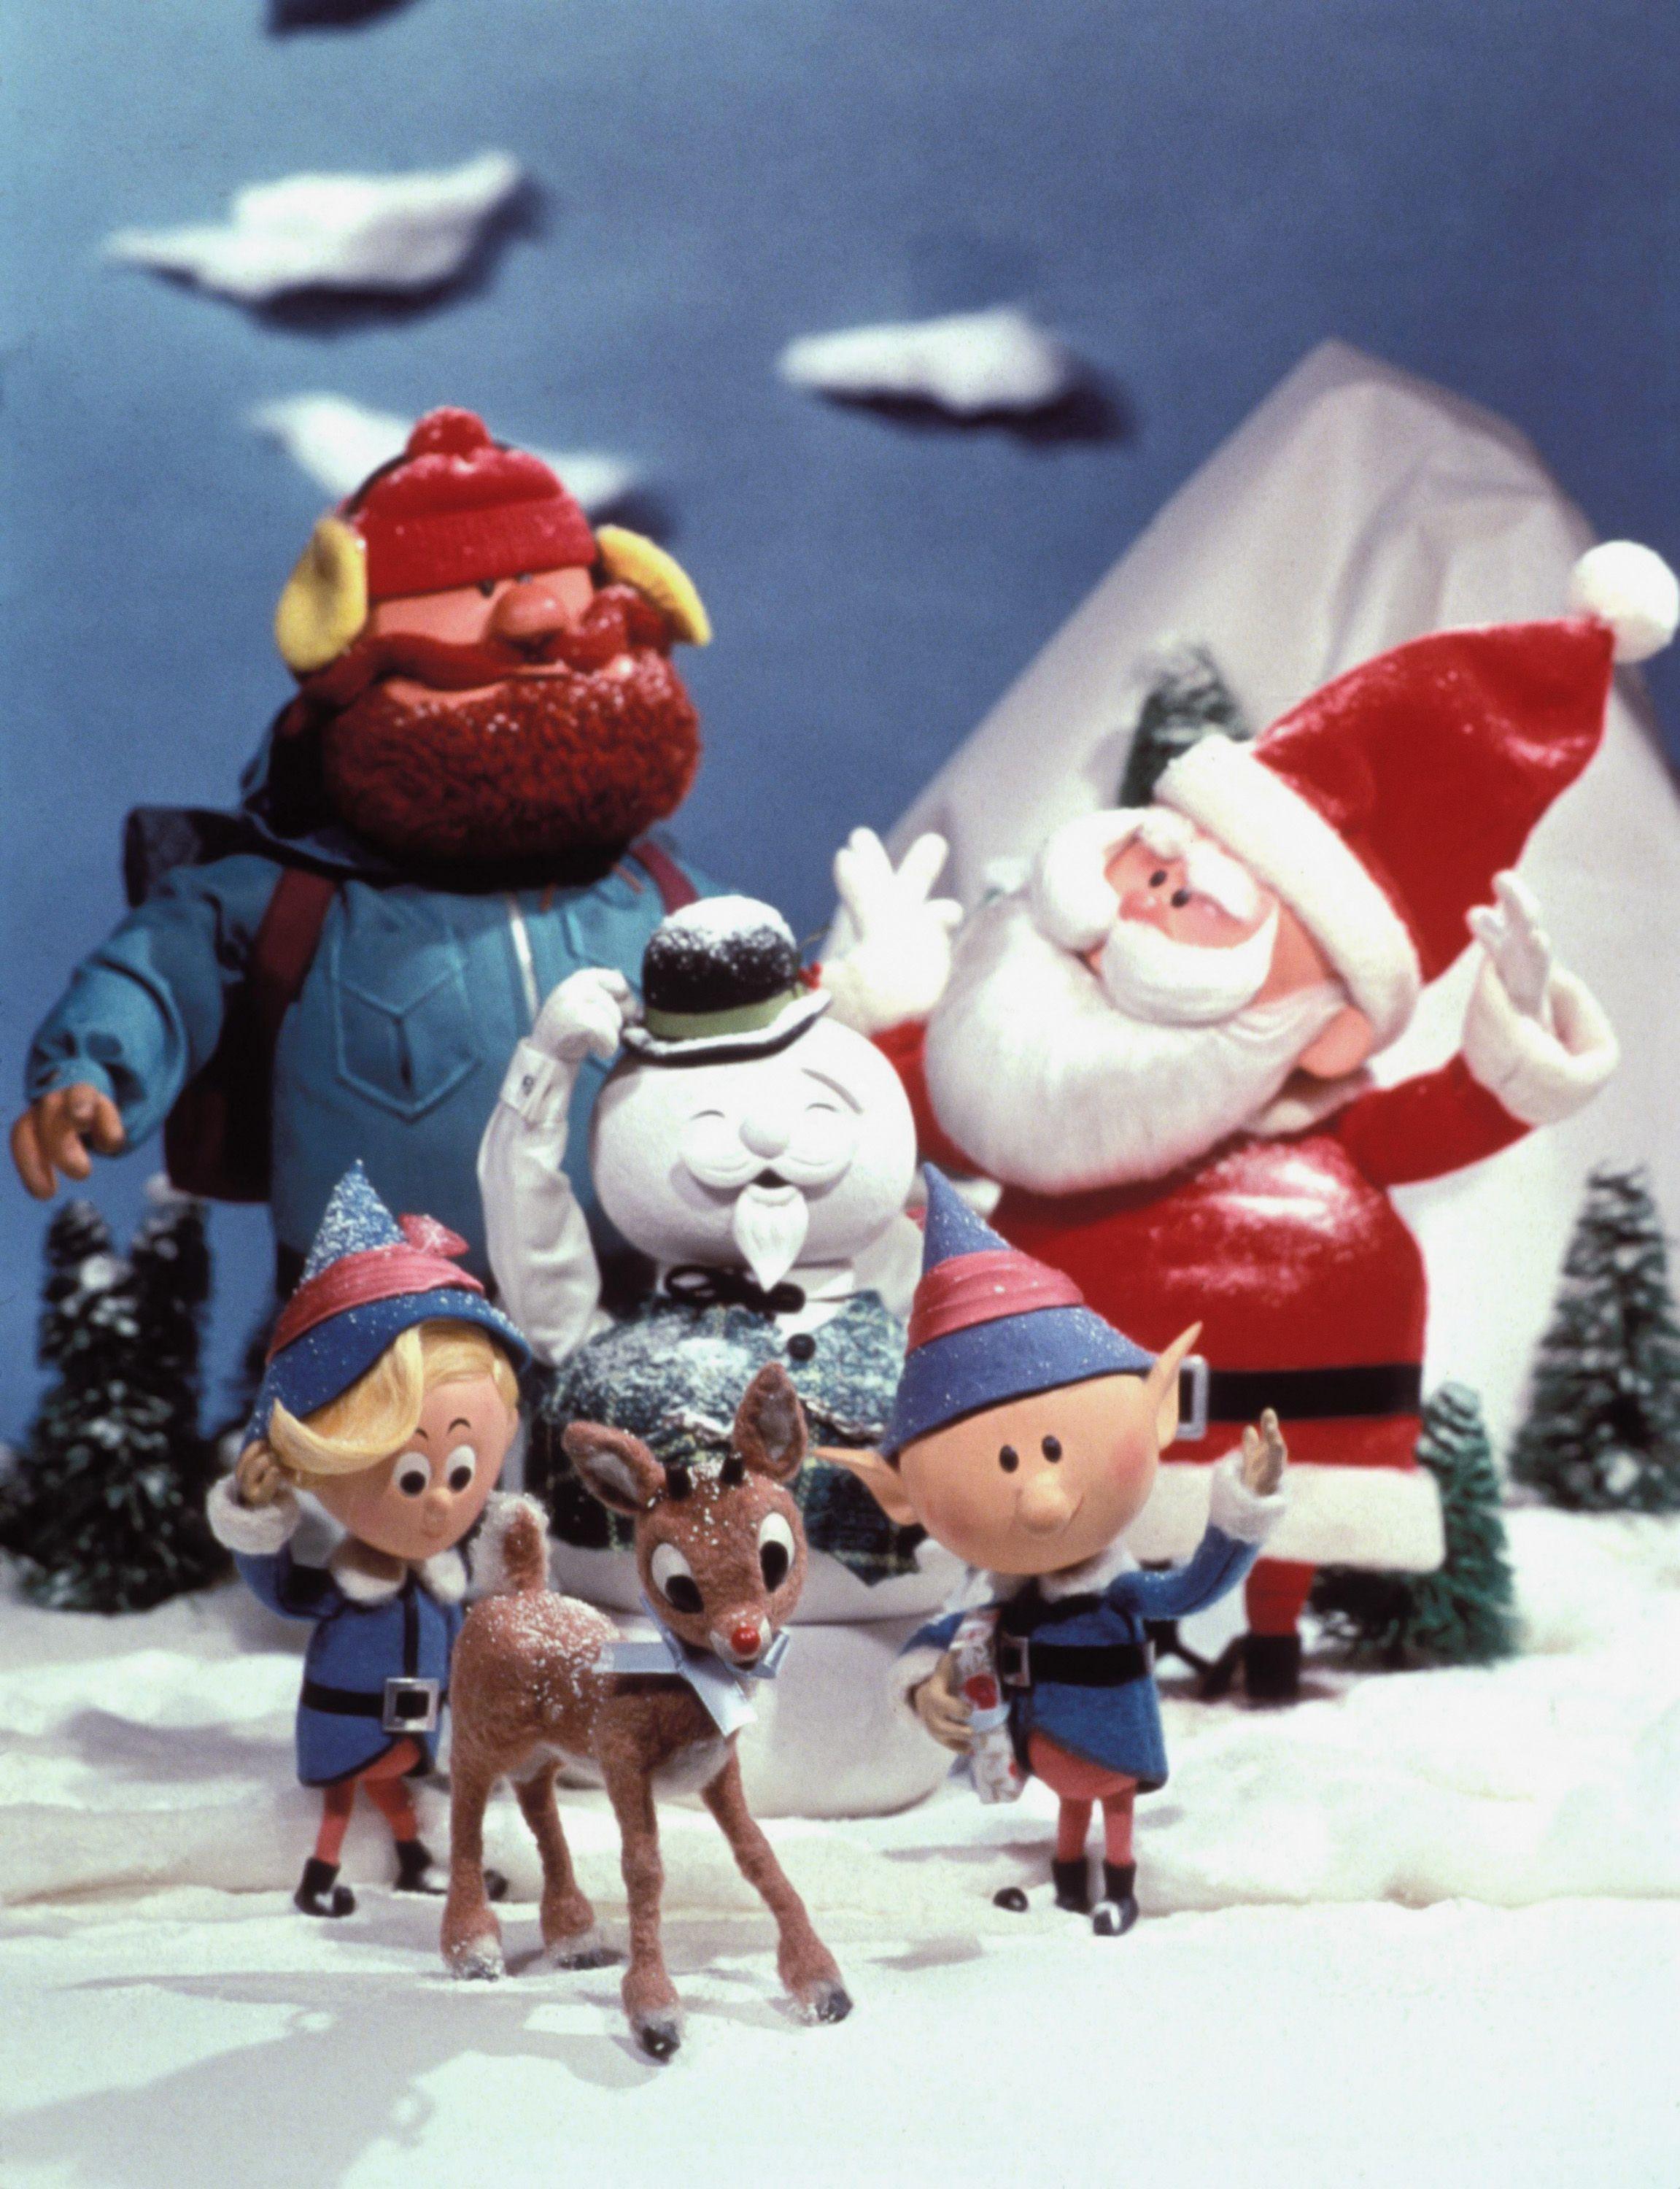 Rudolph Christmas Movie Characters.Rudolph The Red Nosed Reindeer Sparks Mystery About Island